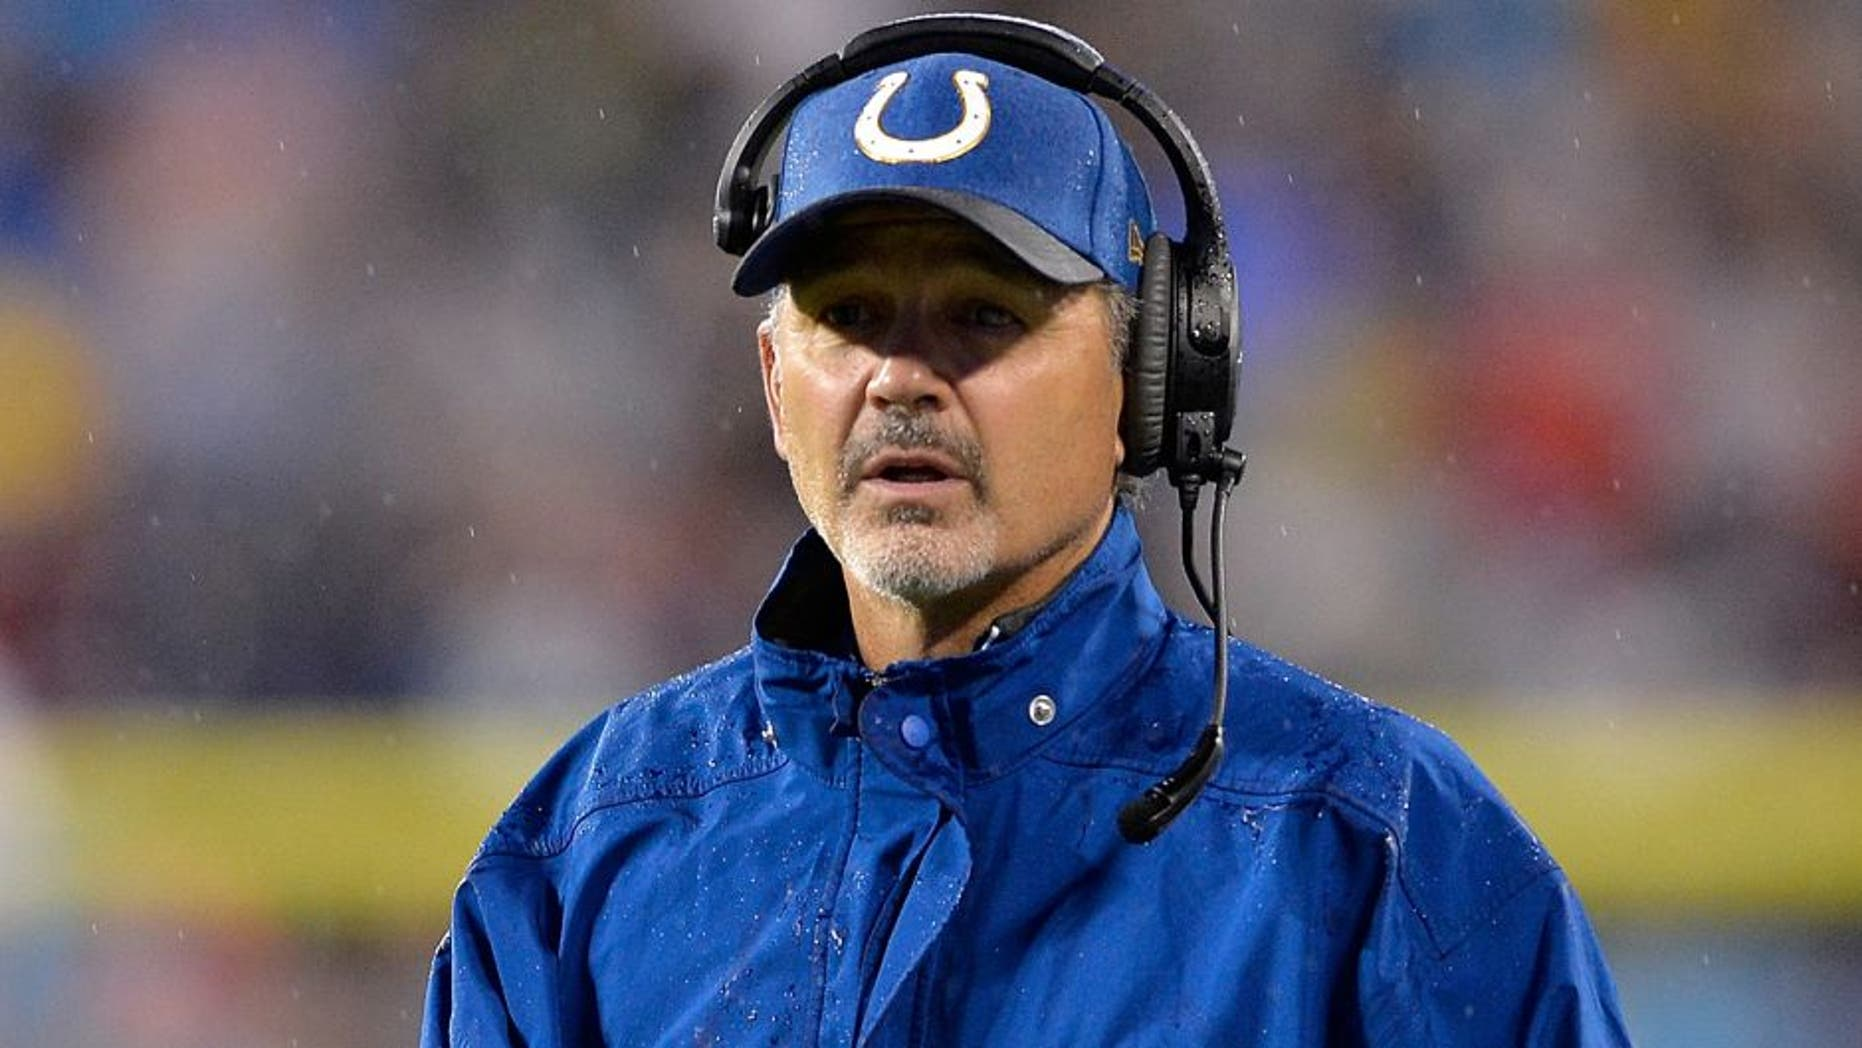 CHARLOTTE, NC - NOVEMBER 02: Head coach Chuck Pagano of the Indianapolis Colts looks on against the Carolina Panthers in the 1st quarter during their game at Bank of America Stadium on November 2, 2015 in Charlotte, North Carolina. (Photo by Grant Halverson/Getty Images)